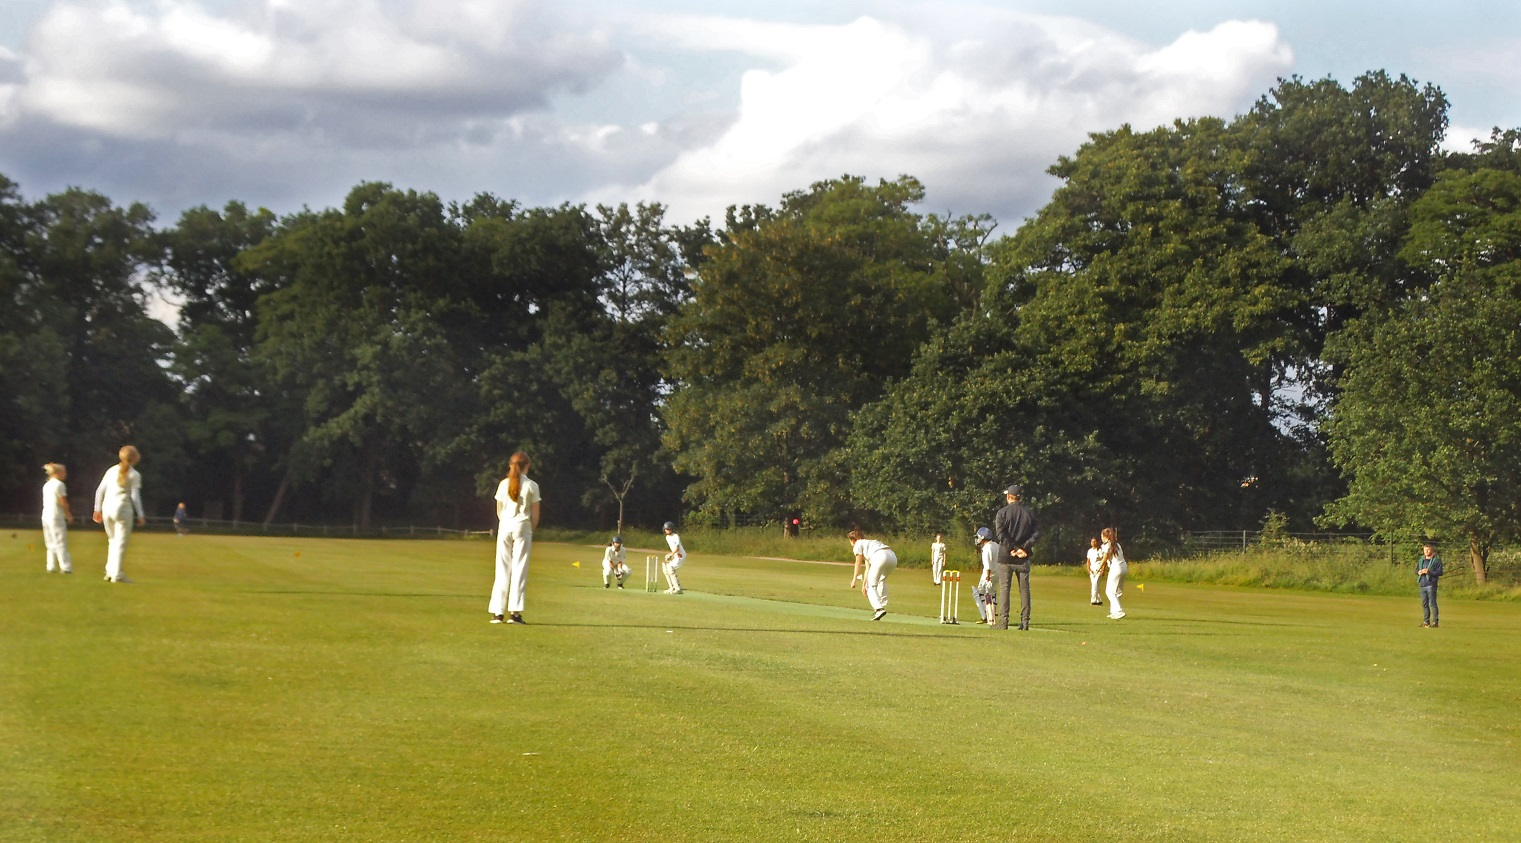 bushy park girls The latest tweets from bushy park girls cc (@bpcricketclub) bushy park girls cricket club playing in the middx seaxe league we're all about participation, performance and fun.